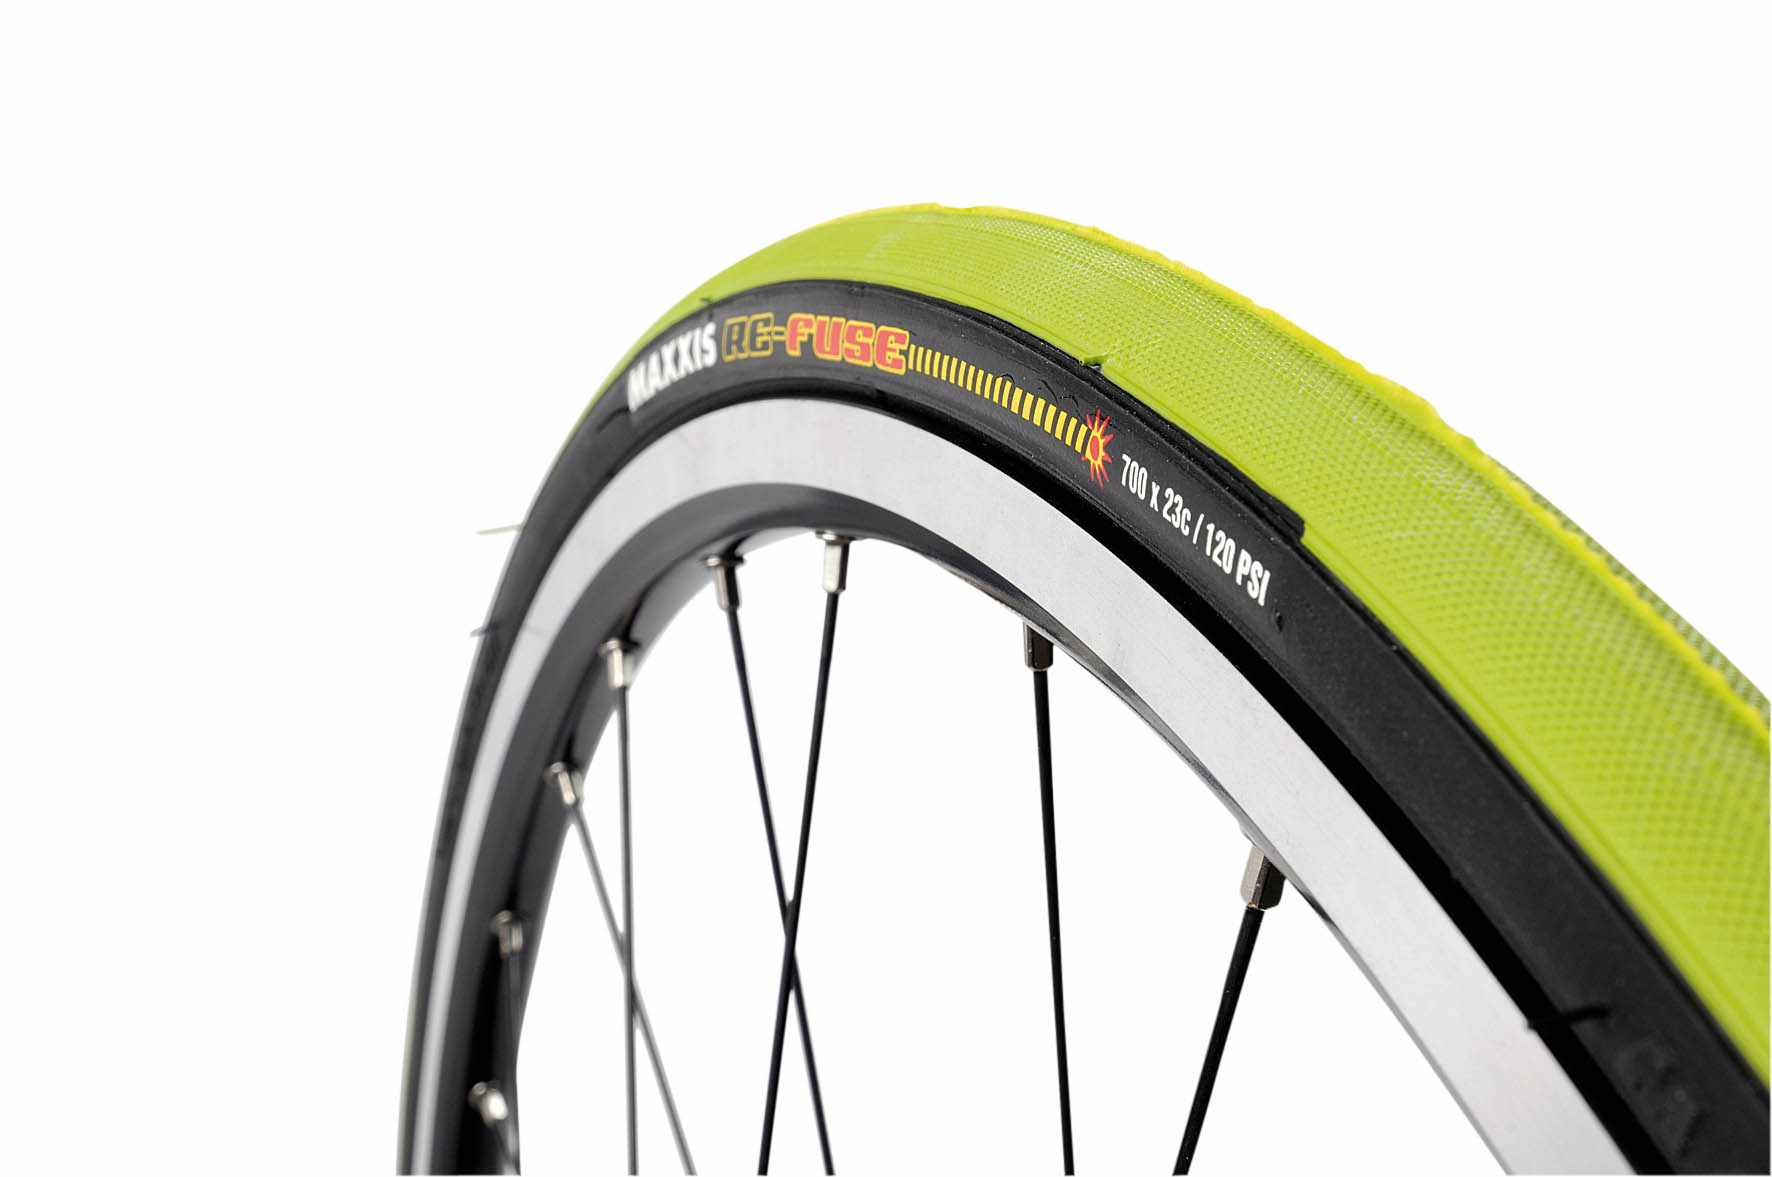 Maxxis Re-Fuse